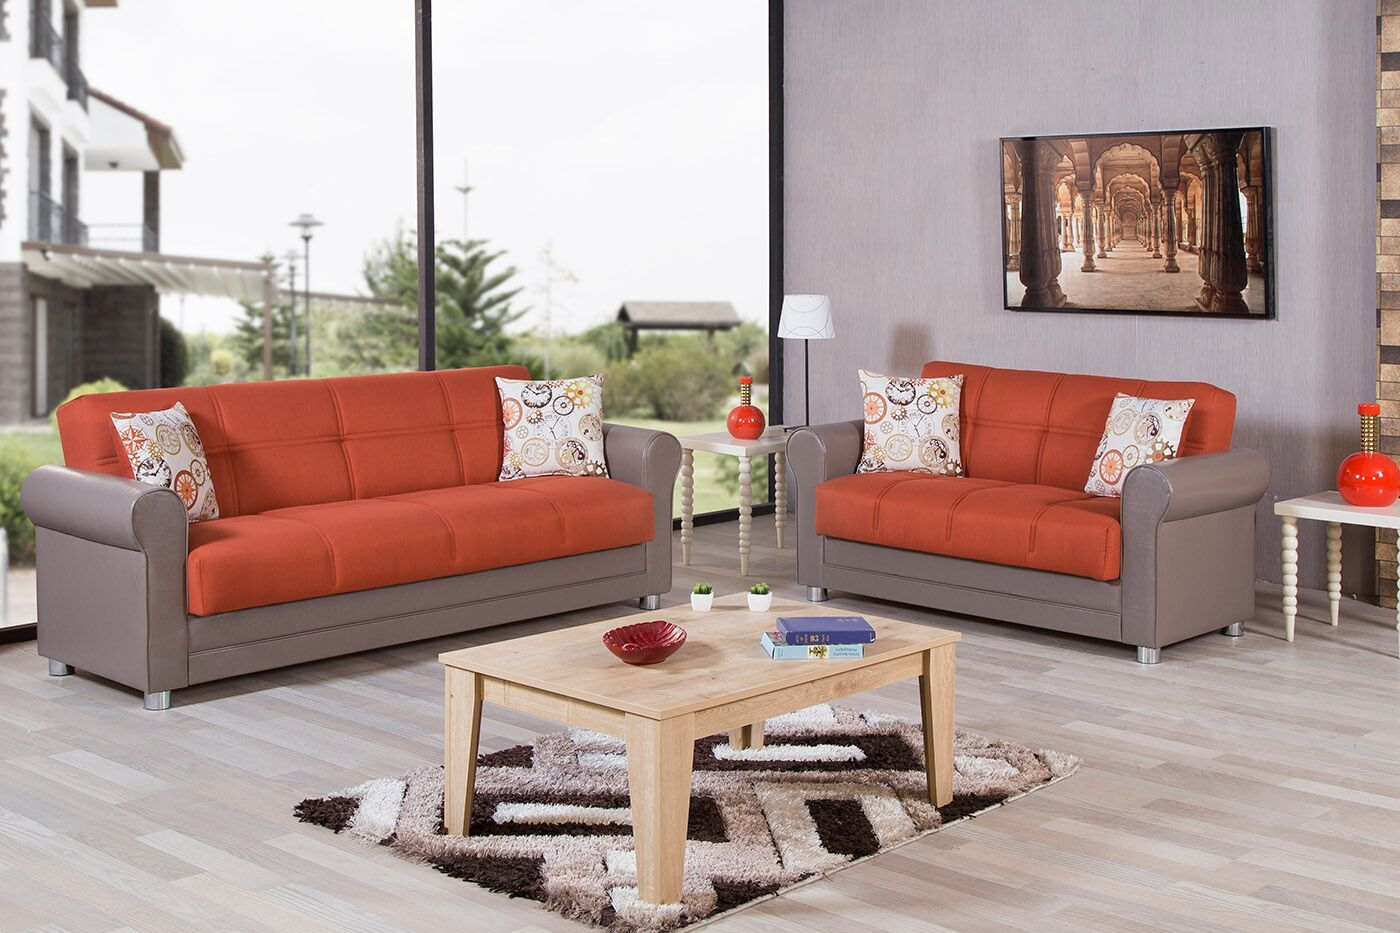 La Monarca Furniture Ideas